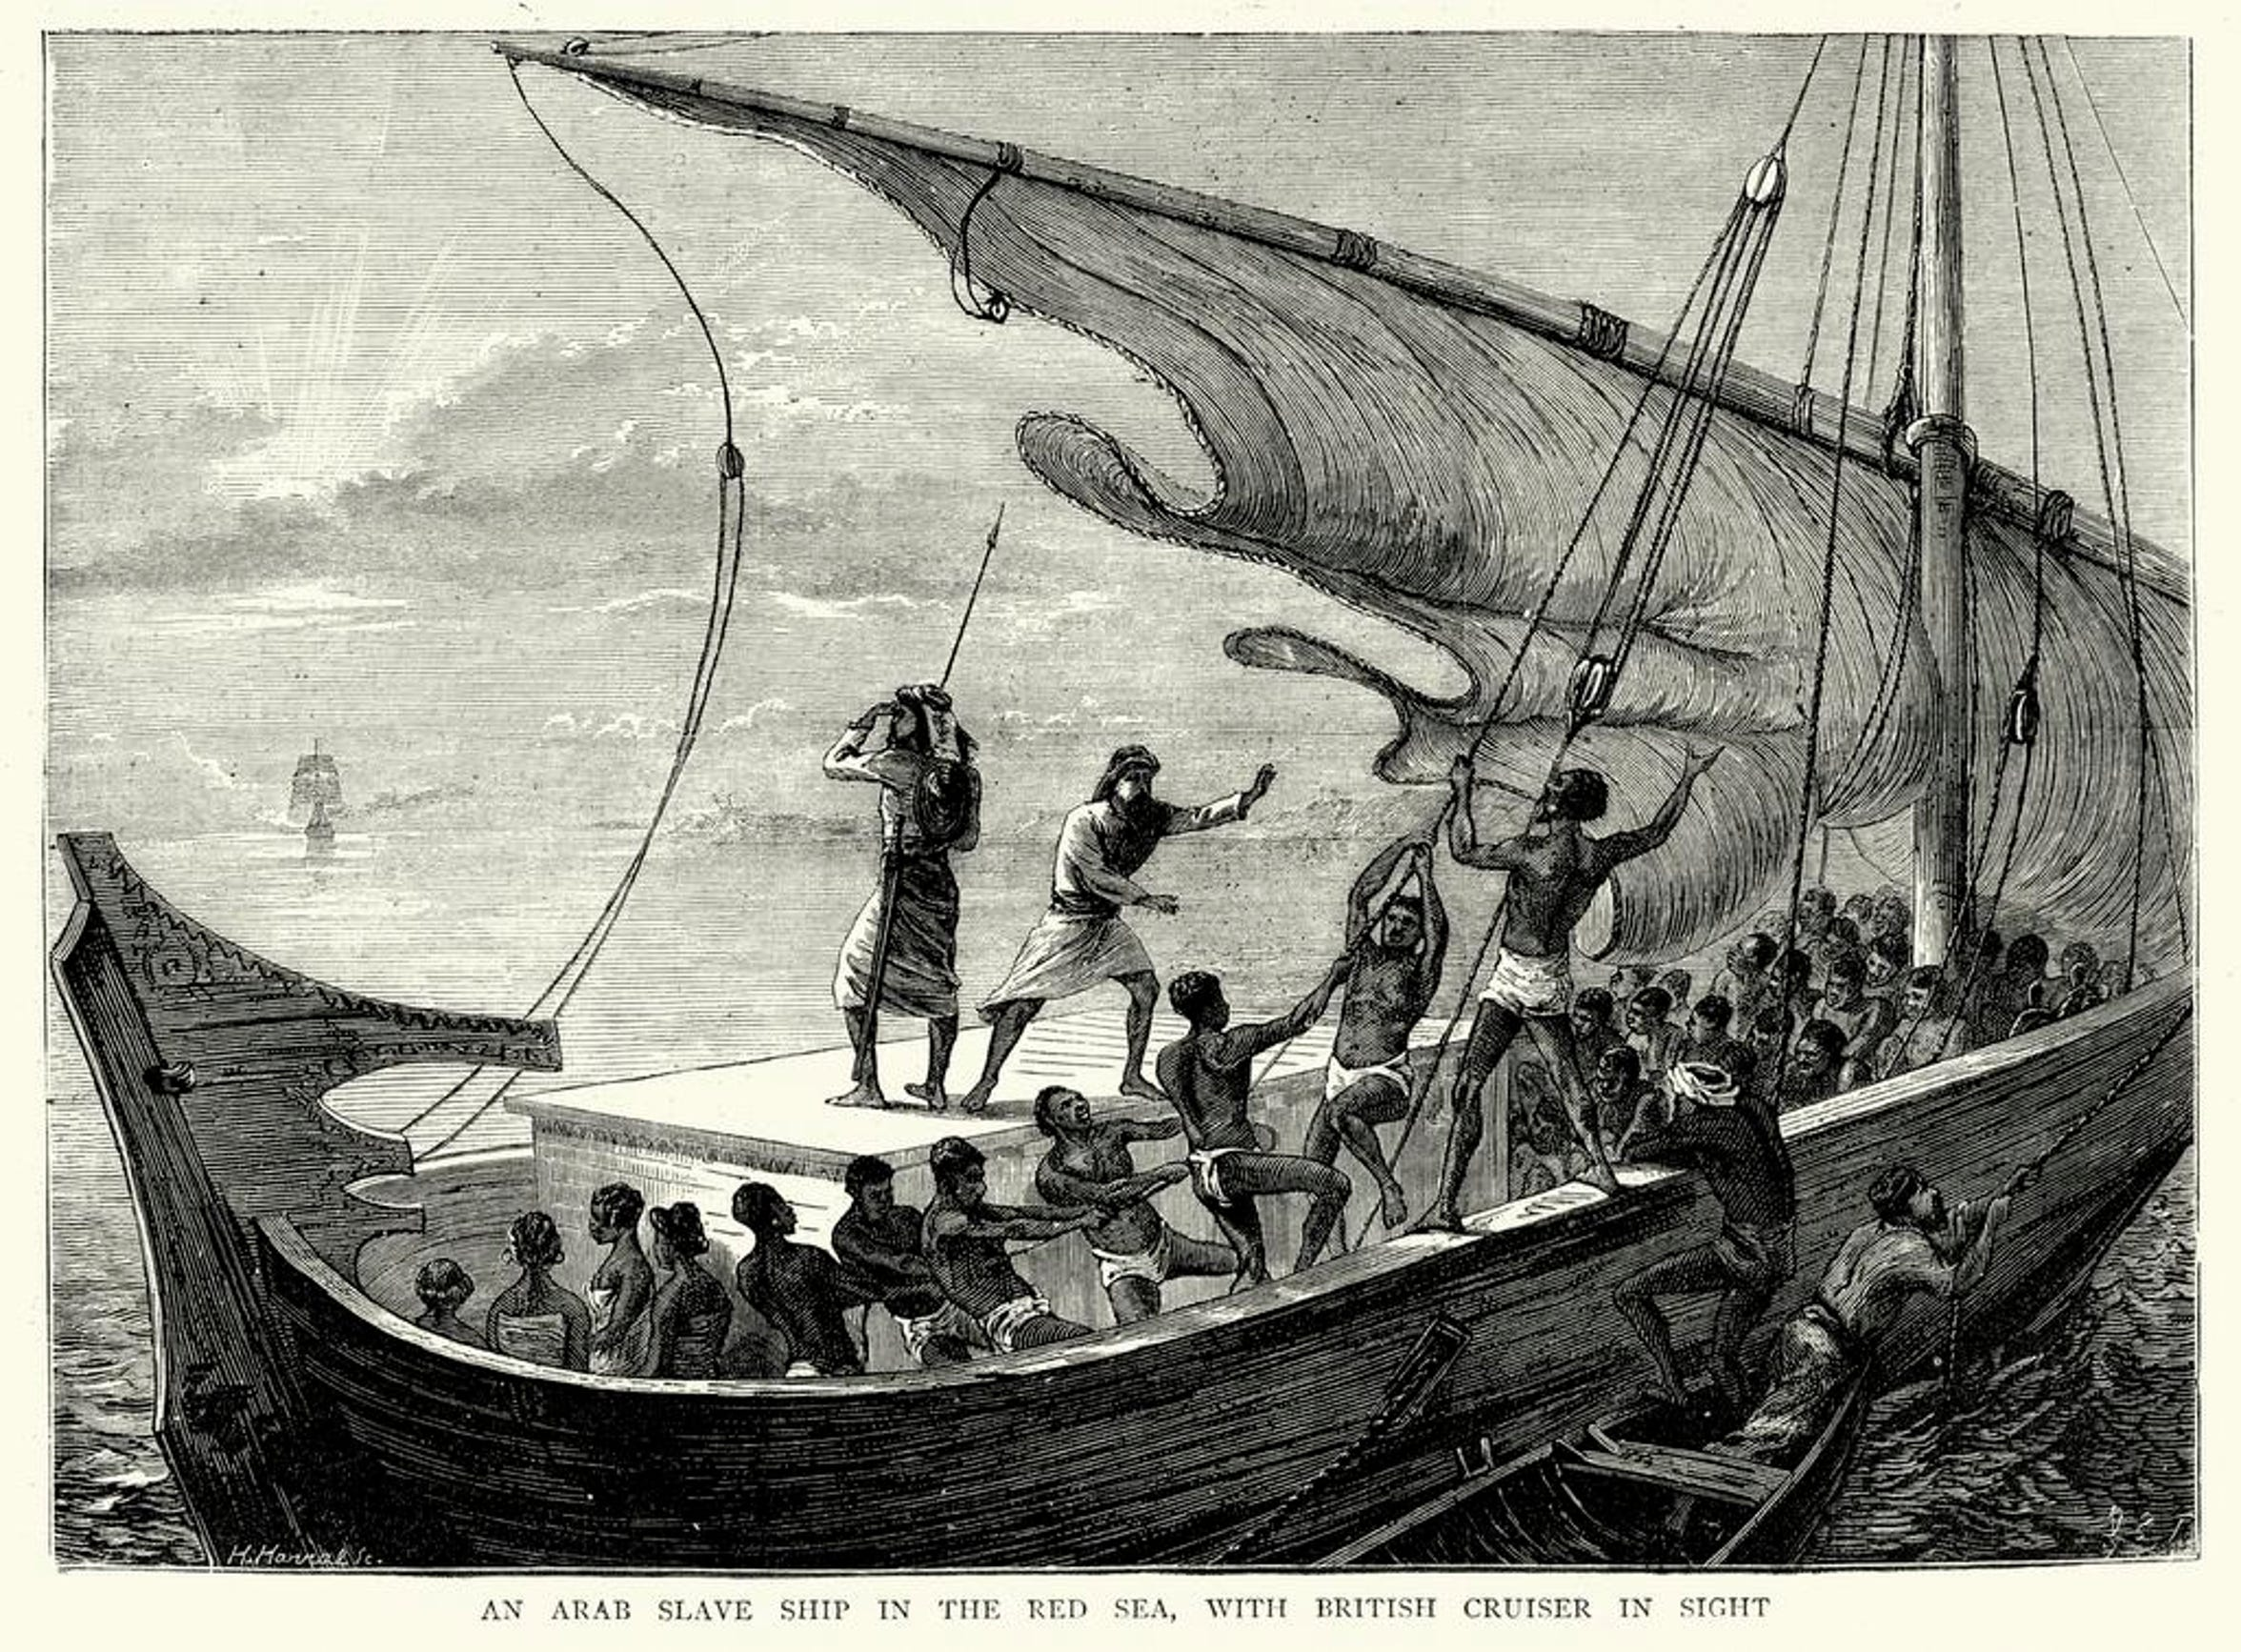 Although the transatlantic slave trade is most familiar to Americans, enslaved Africans were also taken to the Middle East and Asia. This illustration from 1874 shows an Arab slave ship fleeing a British cruiser in the Red Sea.